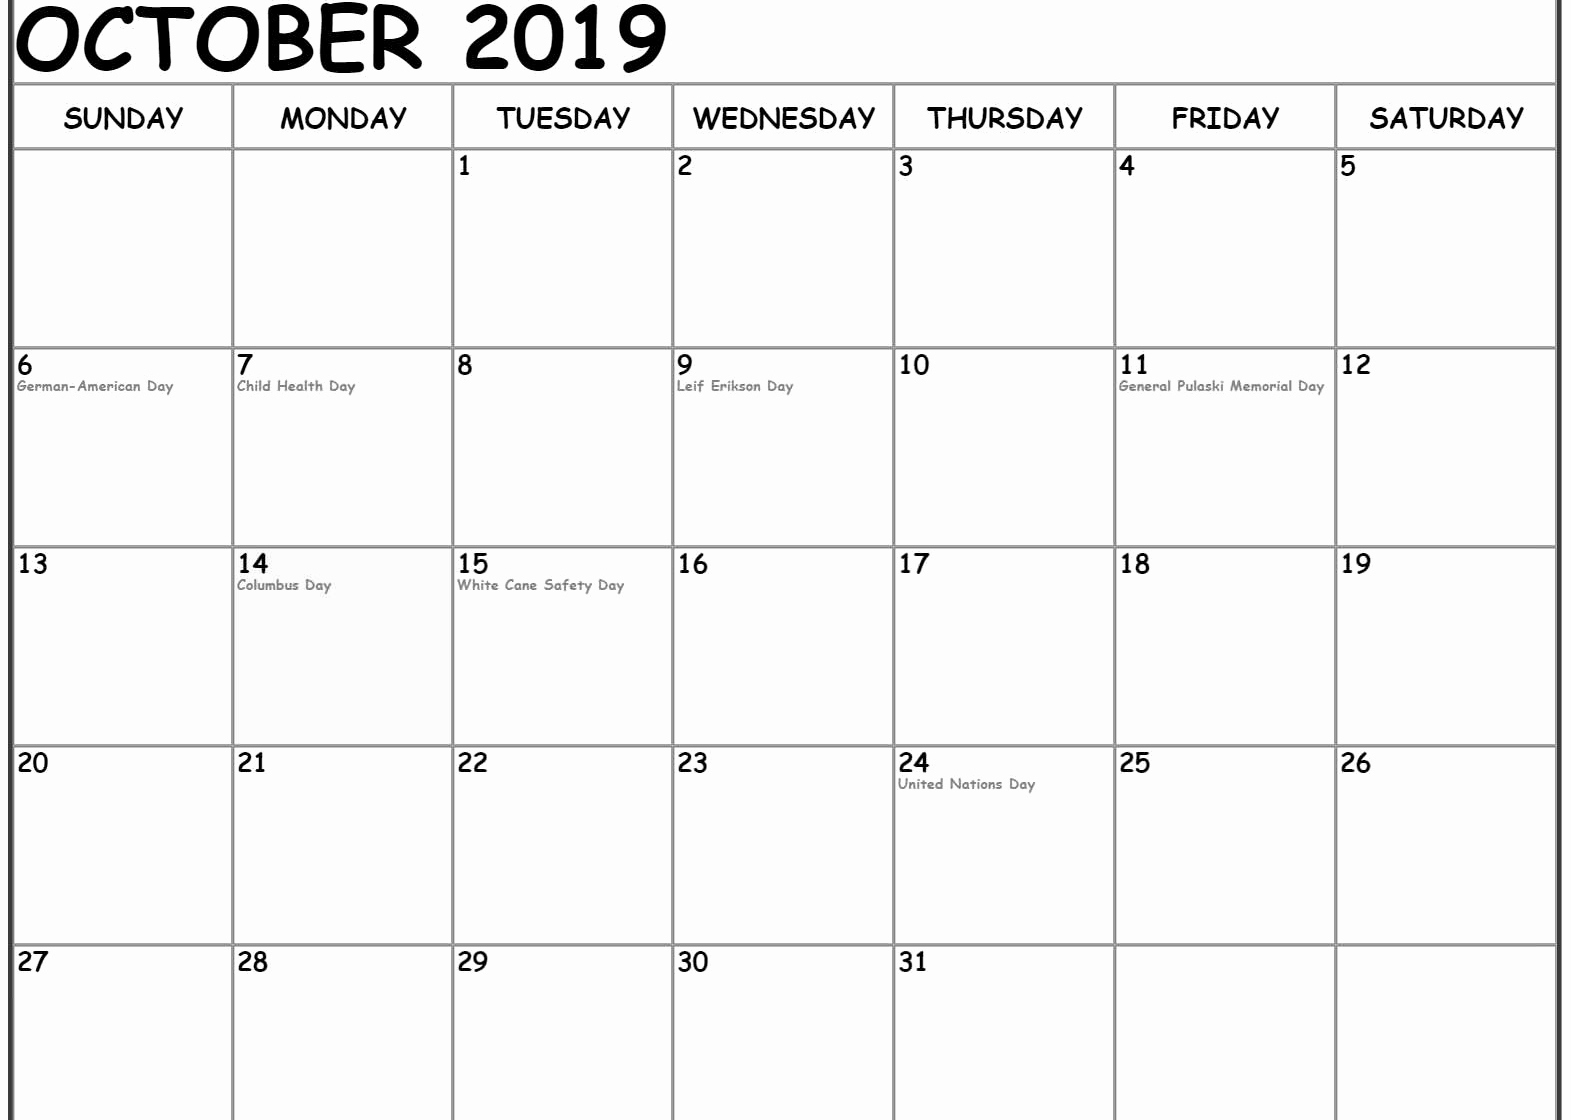 October 2019 Calendar With Holidays Canada